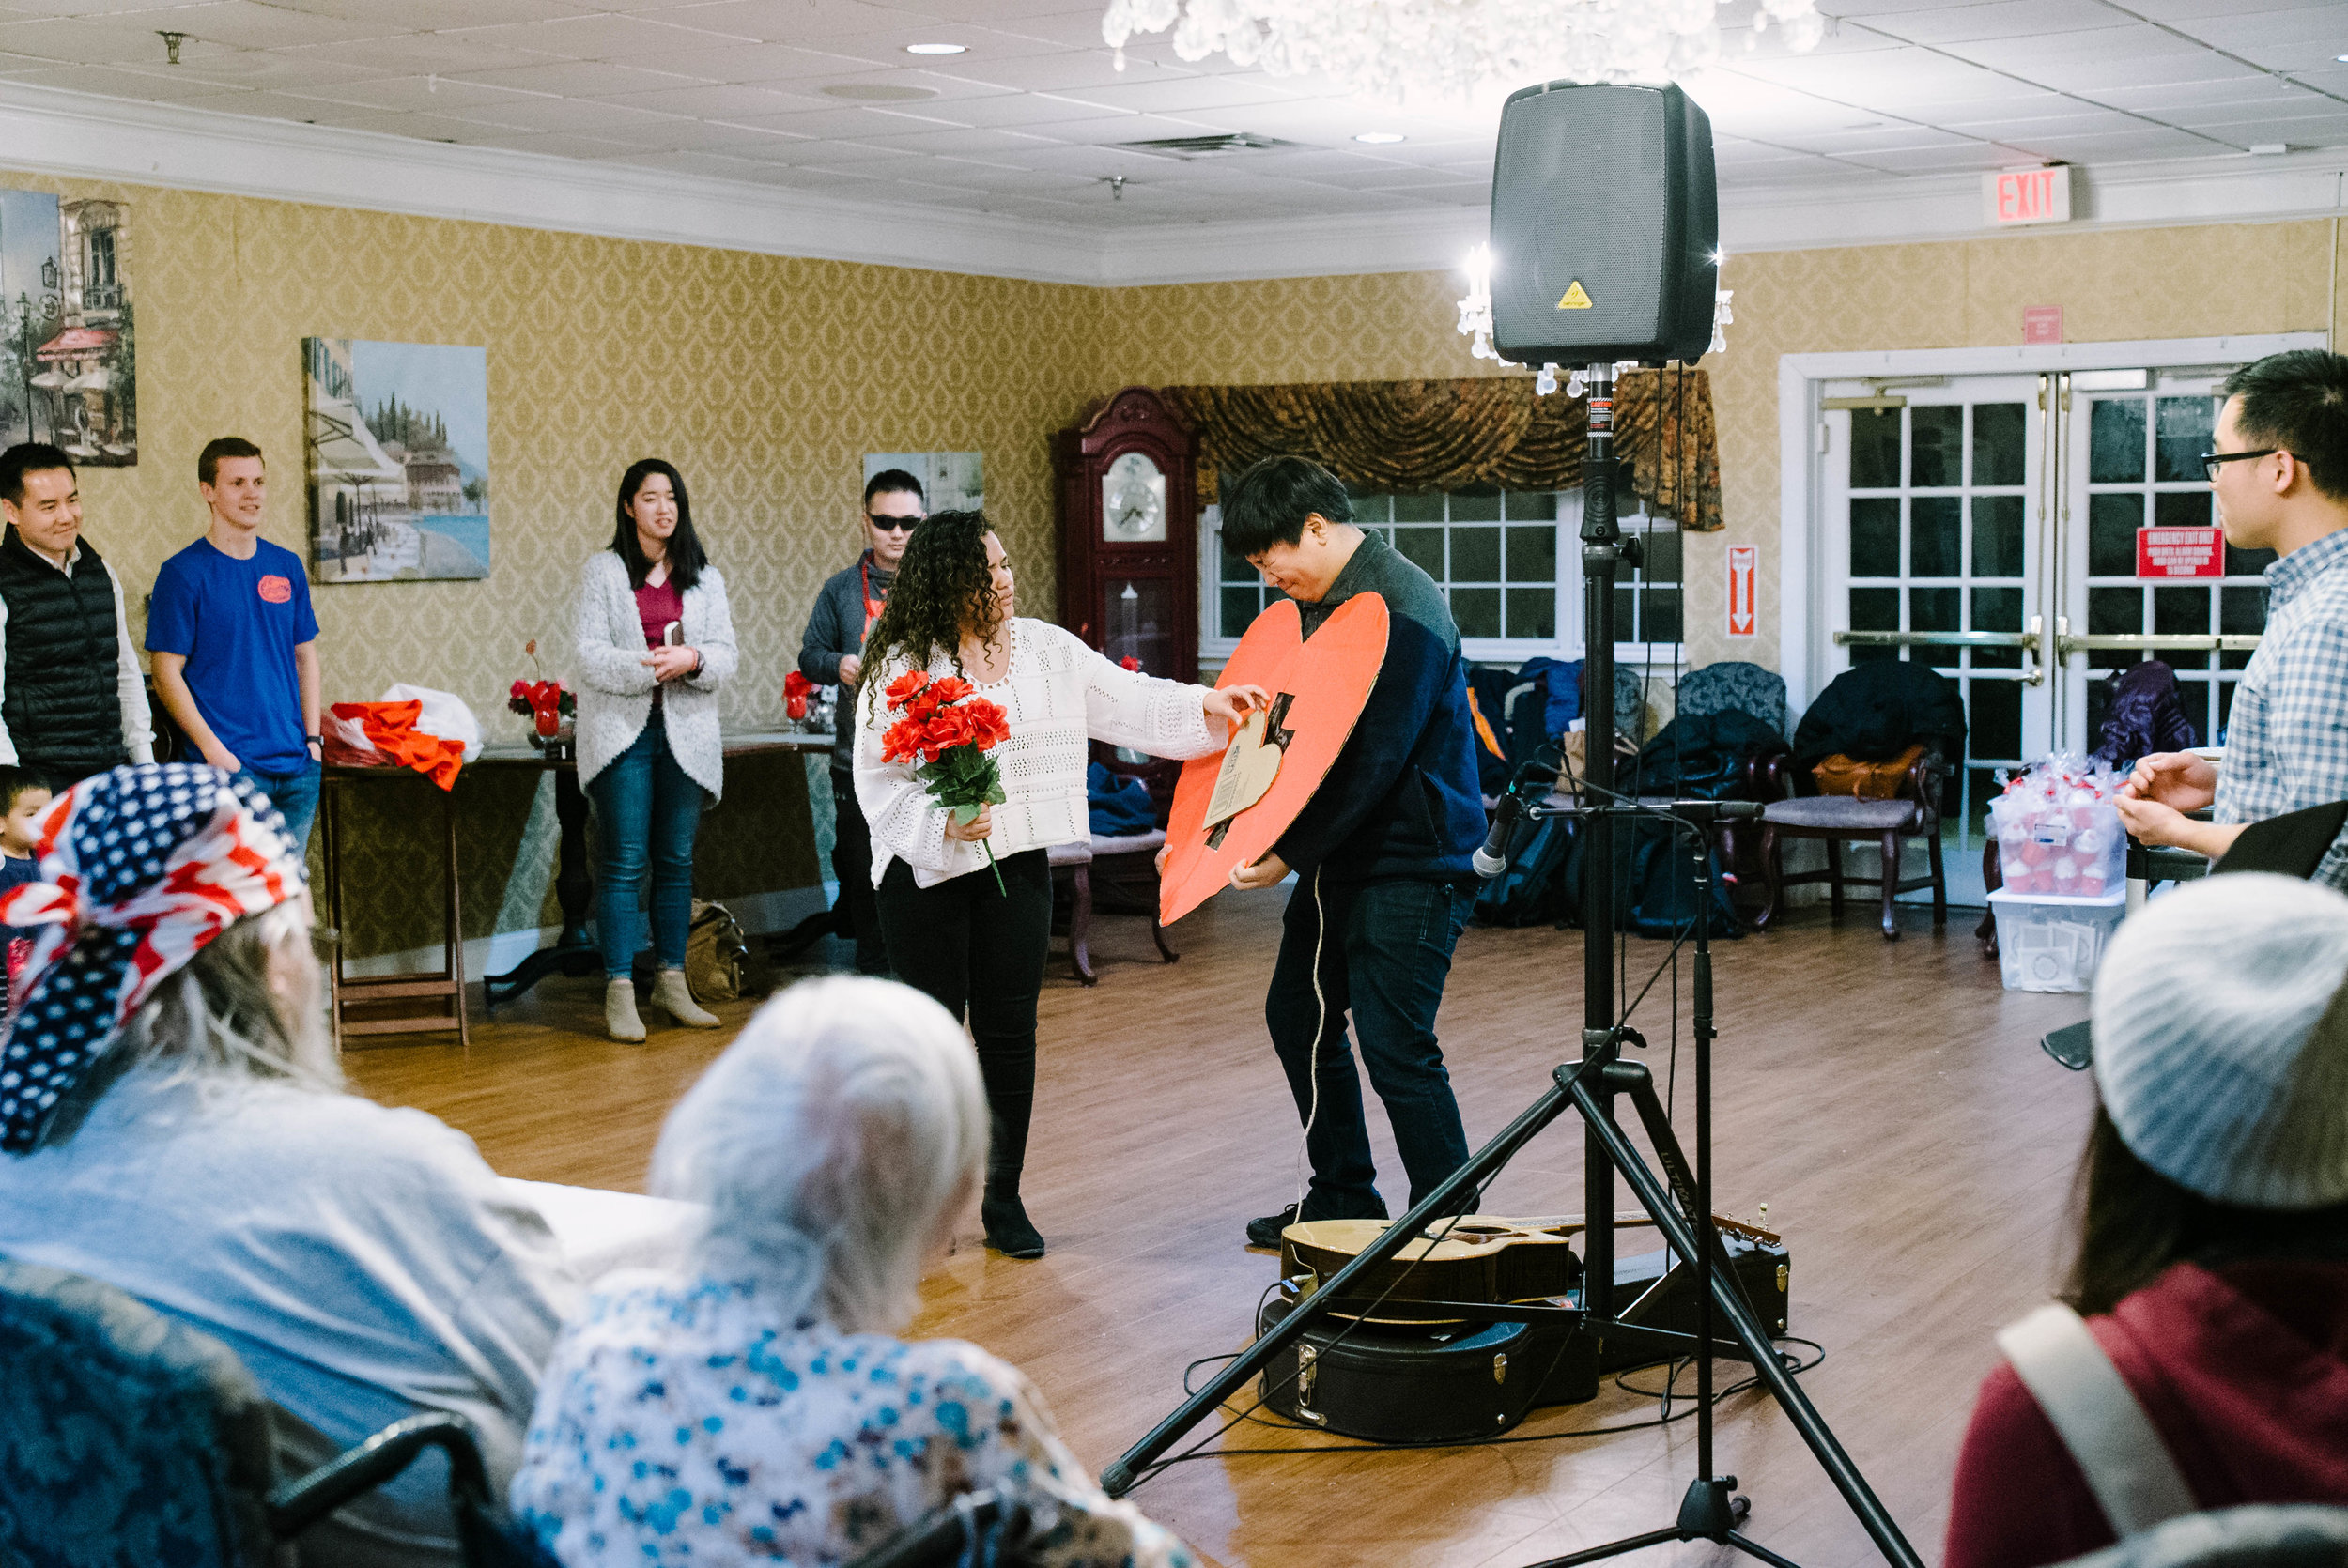 Students from our Rutgers ministry visited a convalescent home near campus and included a skit in their program.